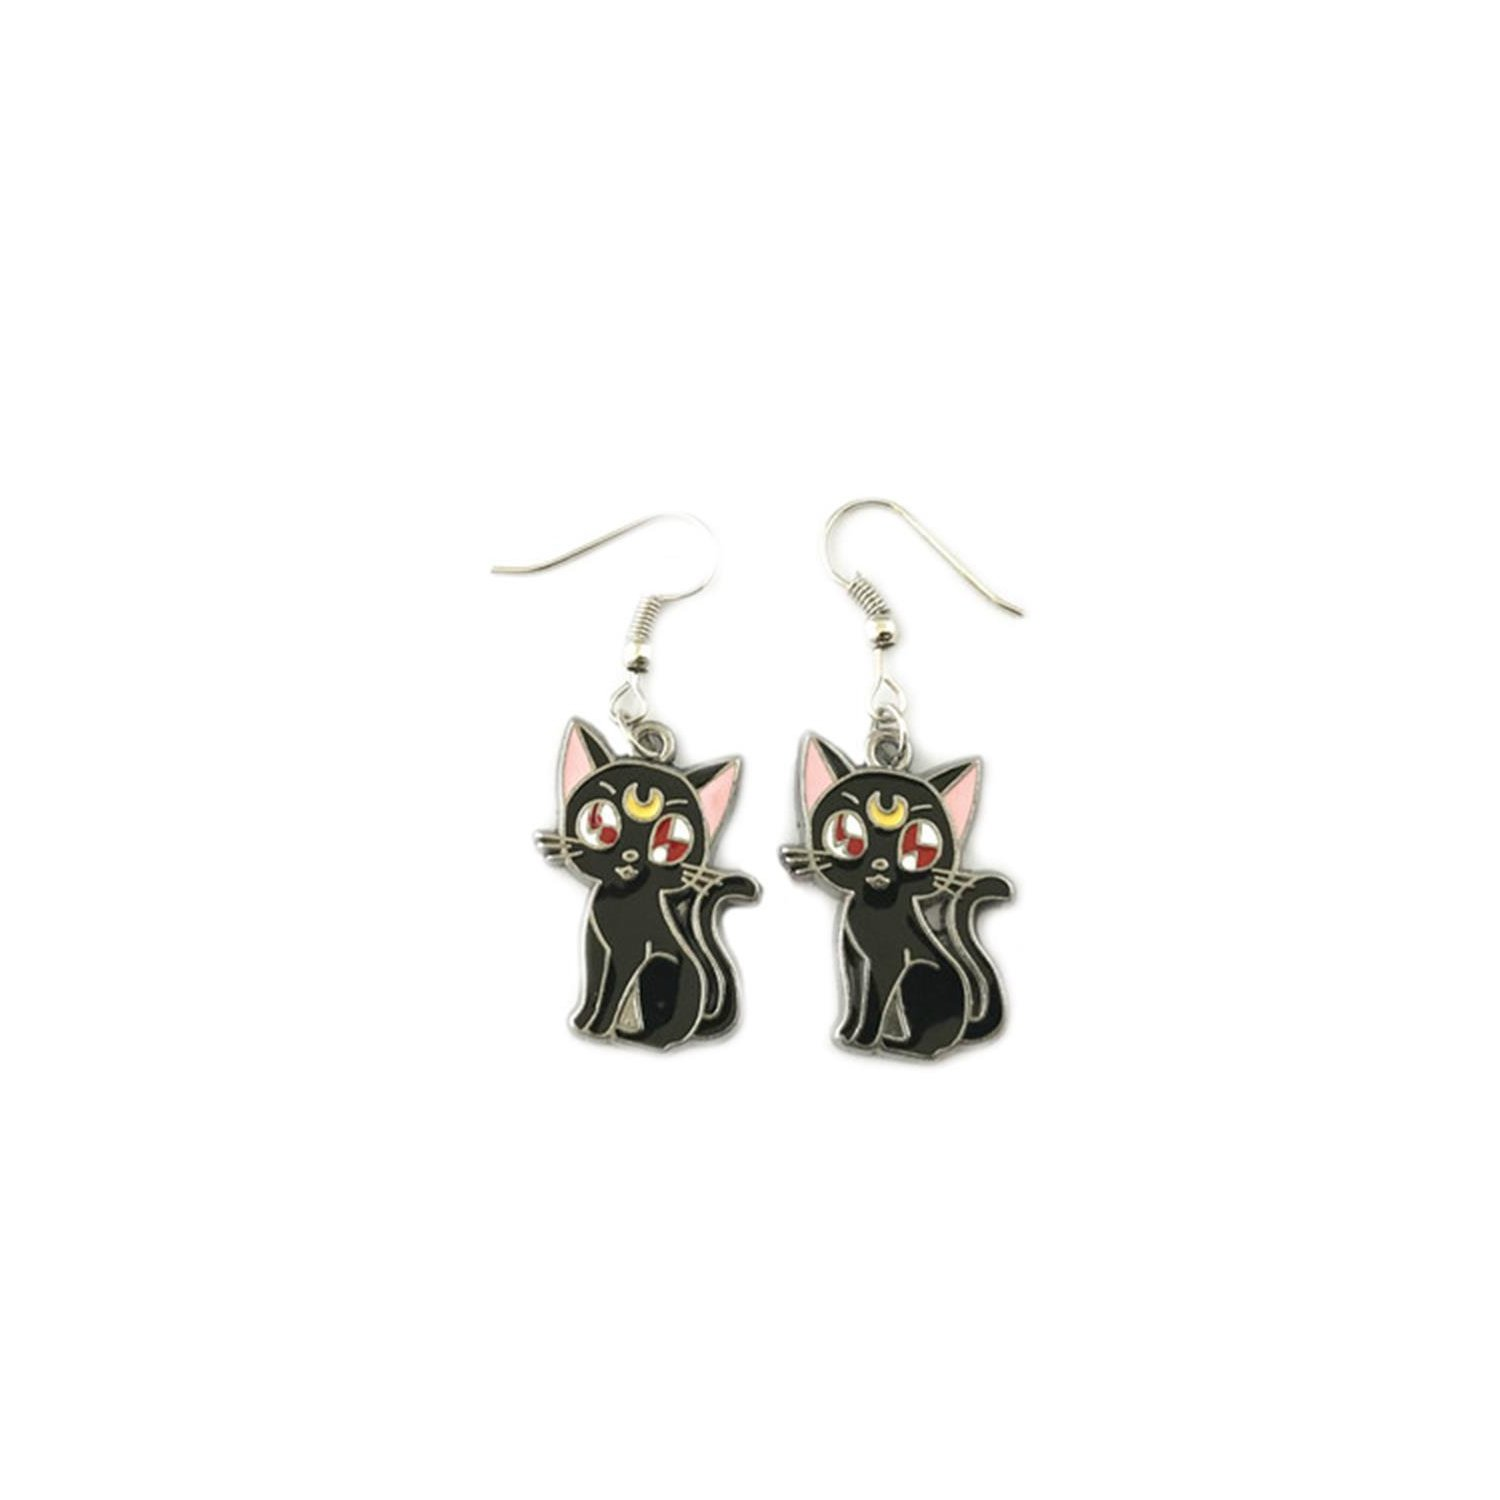 Luna Black Cat Sailor Moon Anime Drop Earrings With Gift Box from Outlander Gear